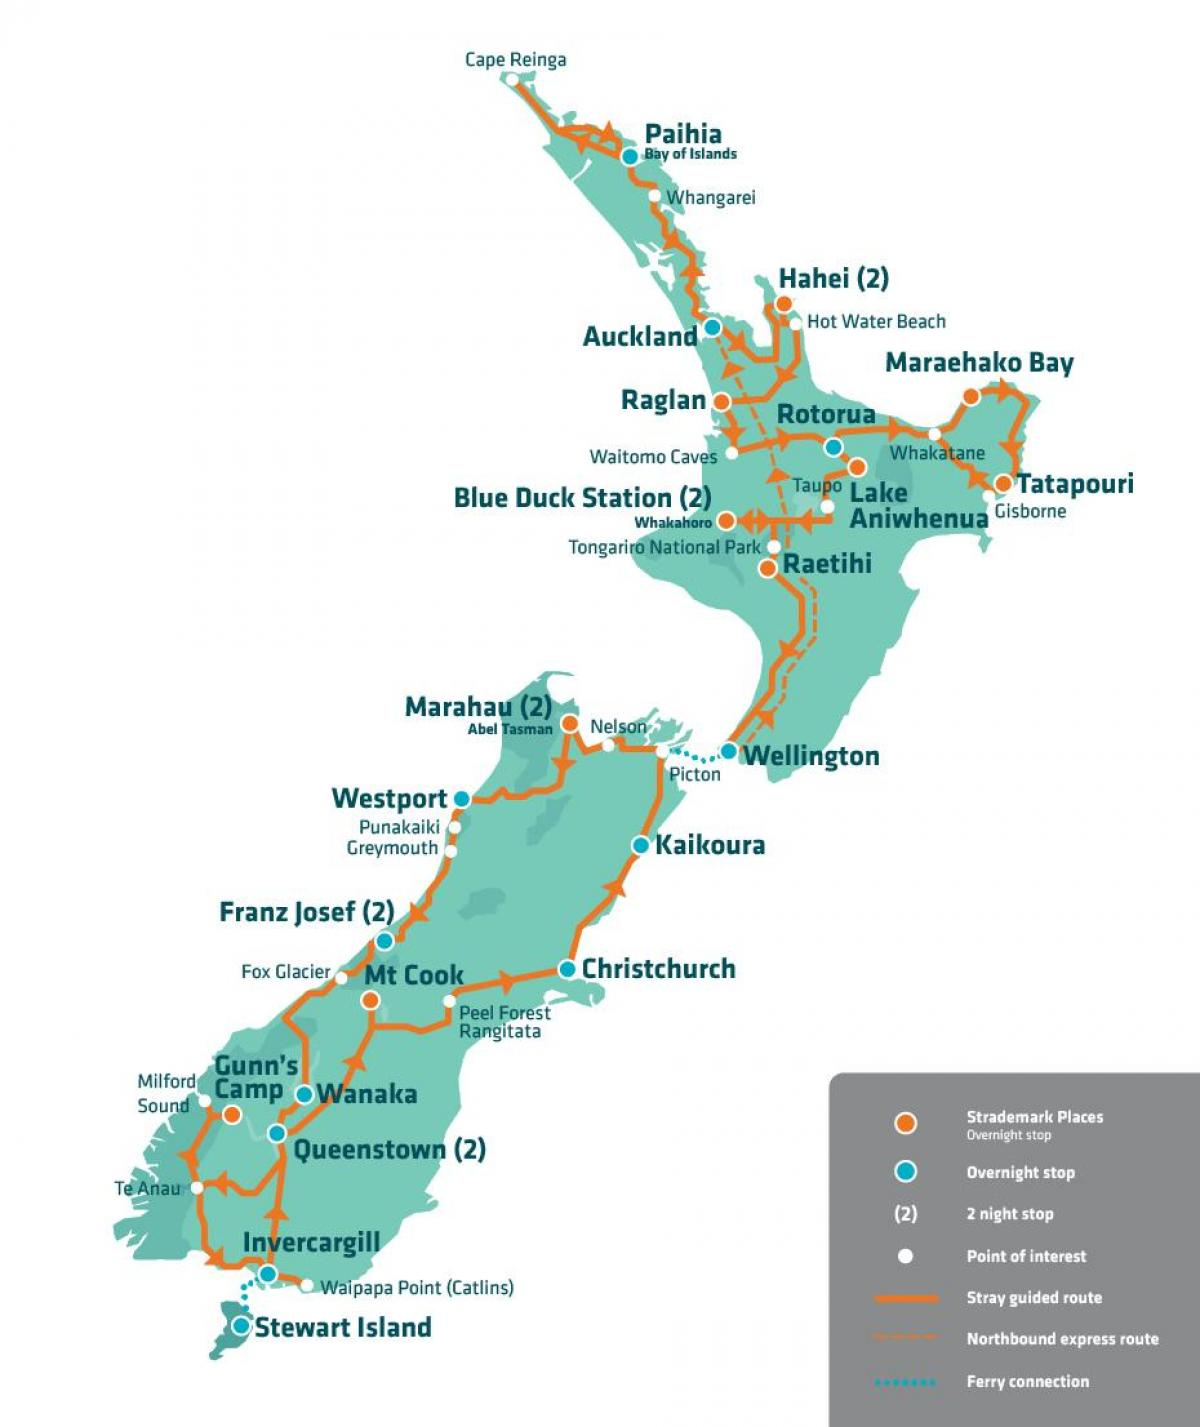 Travel Map New Zealand.New Zealand Travel Map New Zealand Attraction Map